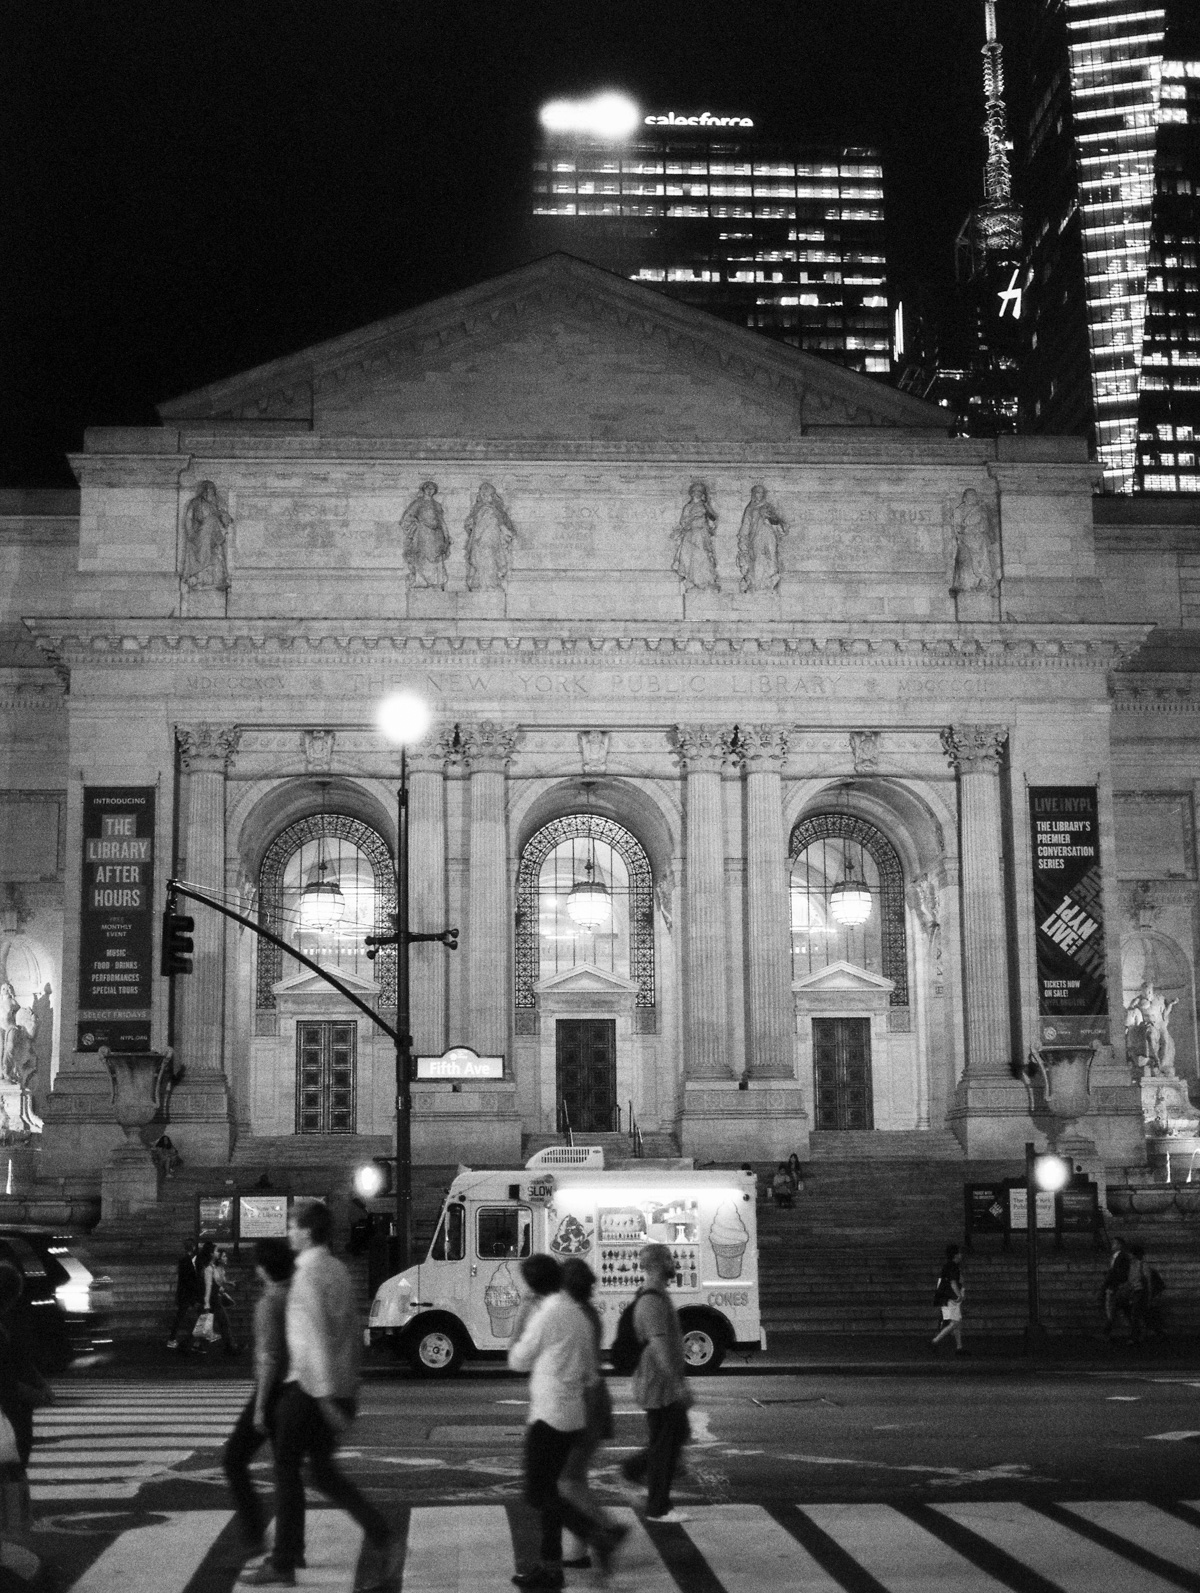 New York City Night photography. Ice cream truck on film.